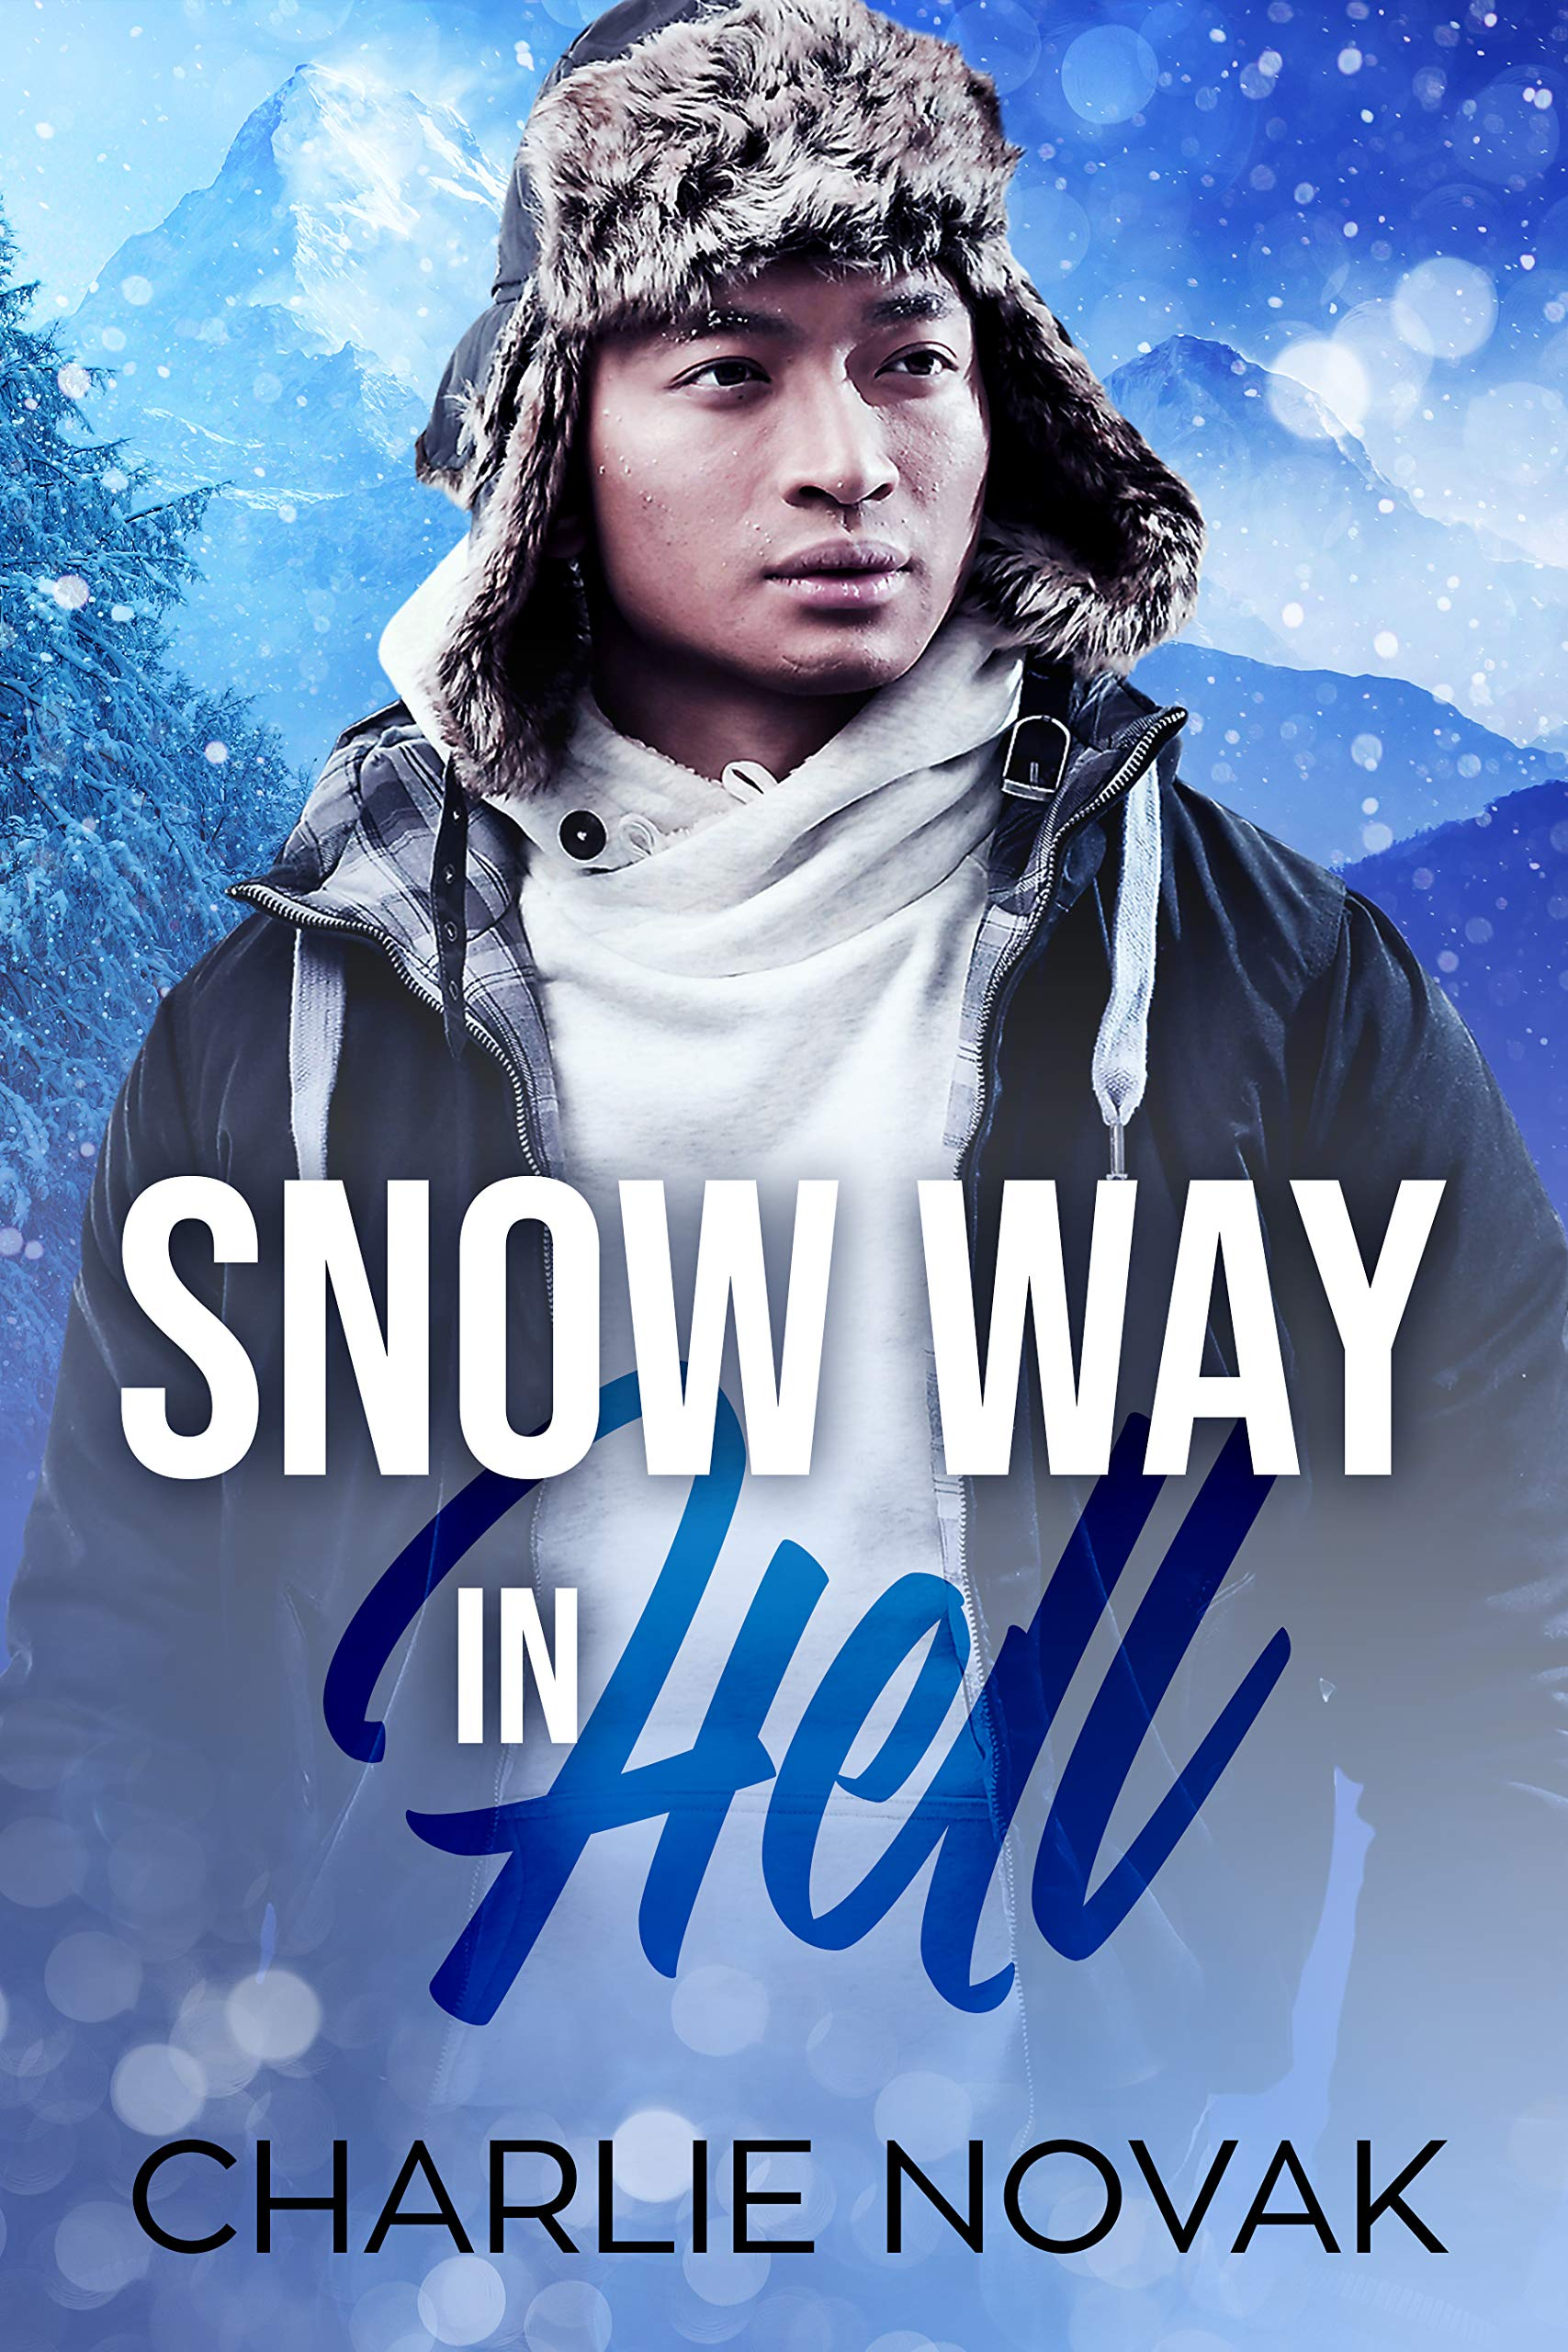 Snow Way in Hell